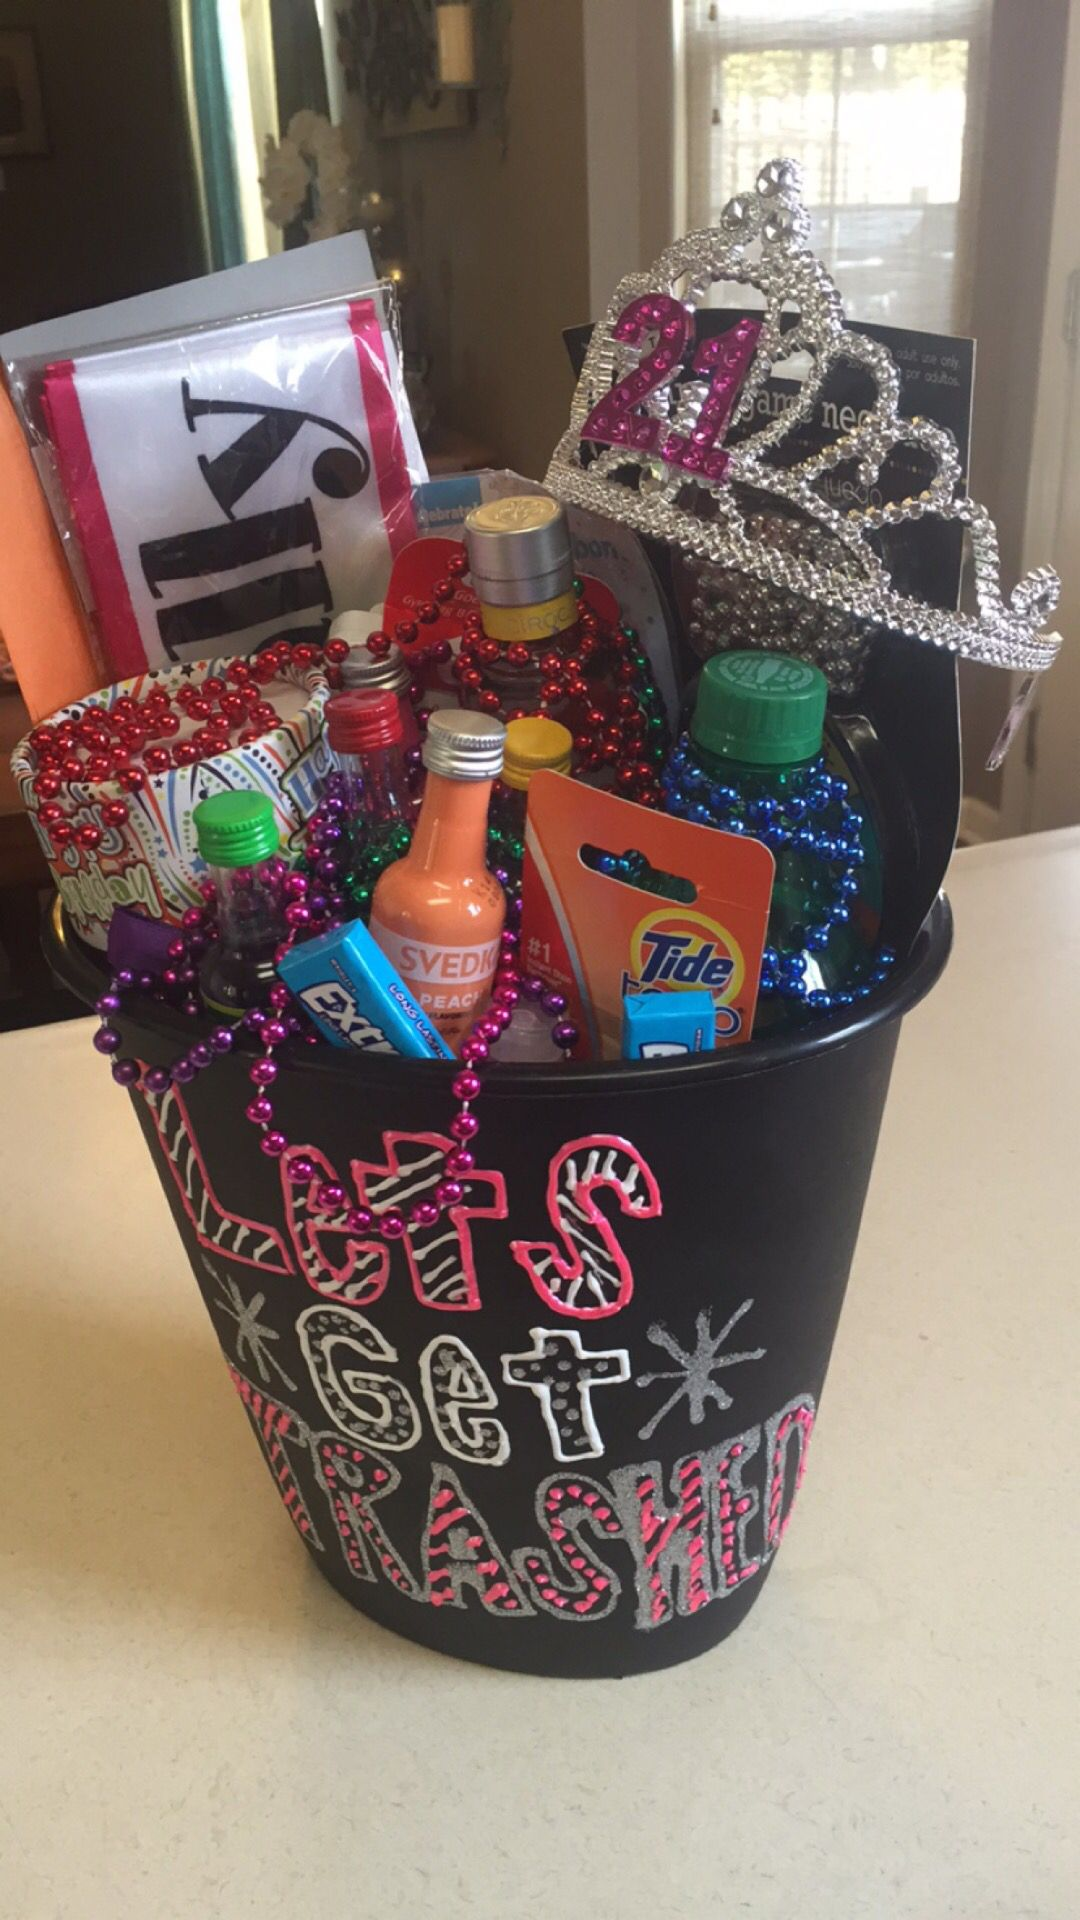 21st birthday gift! In a trash can saying